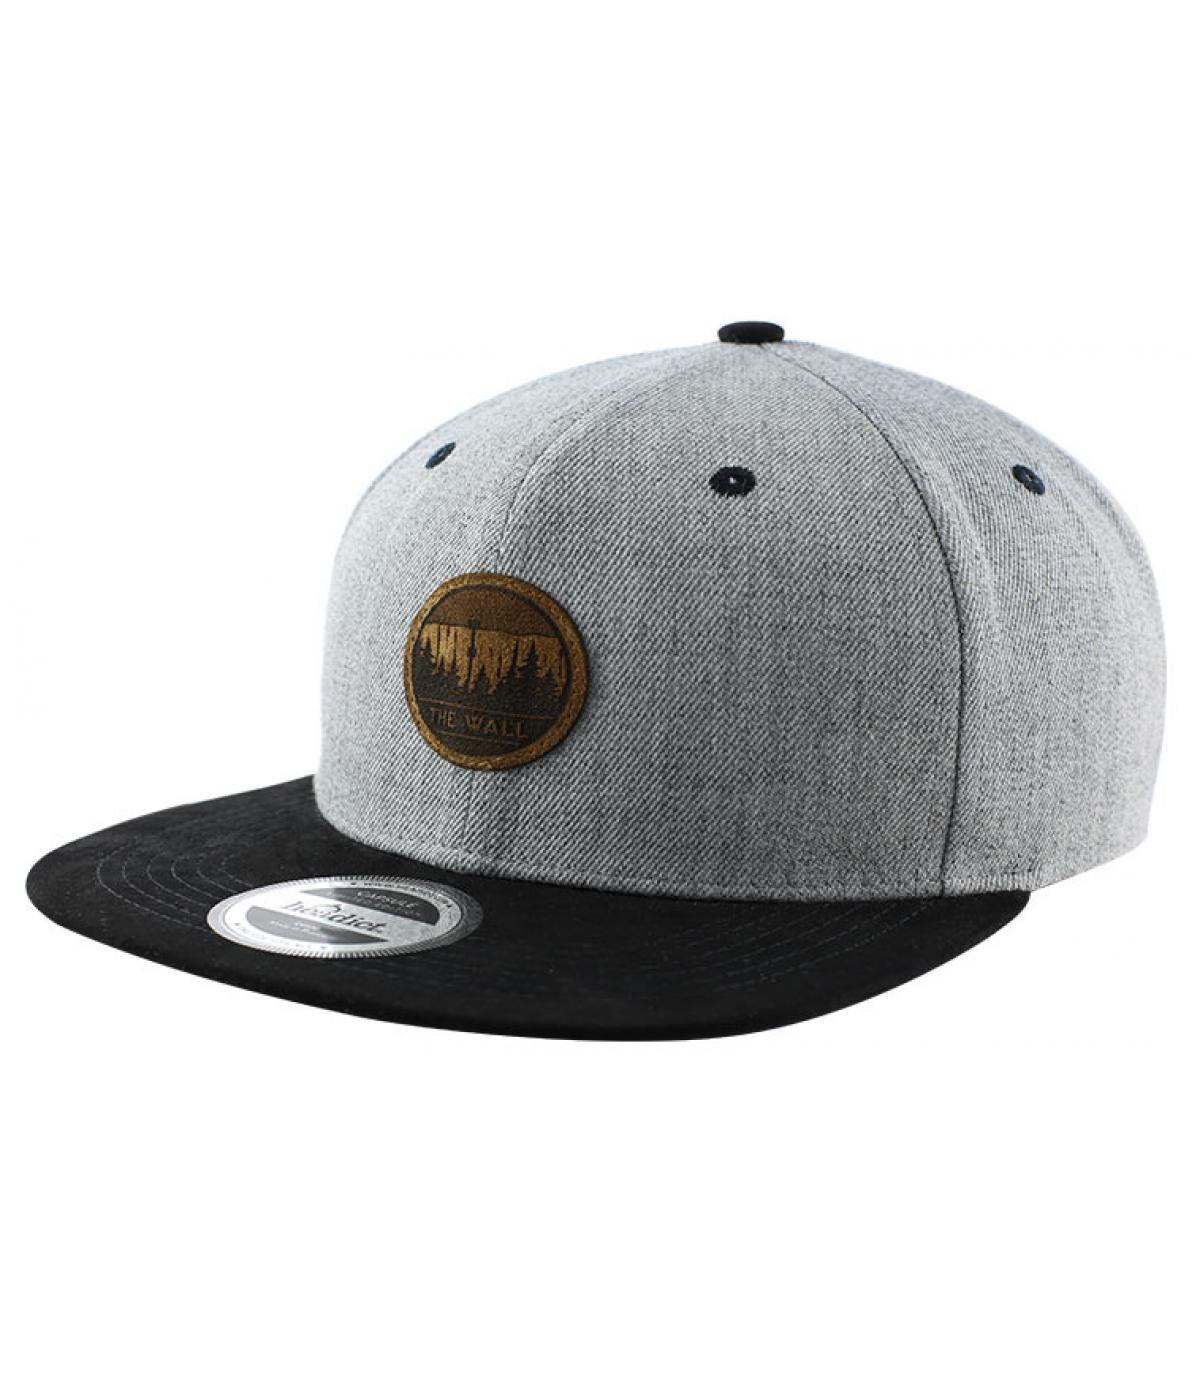 snapback The Wall grise noire